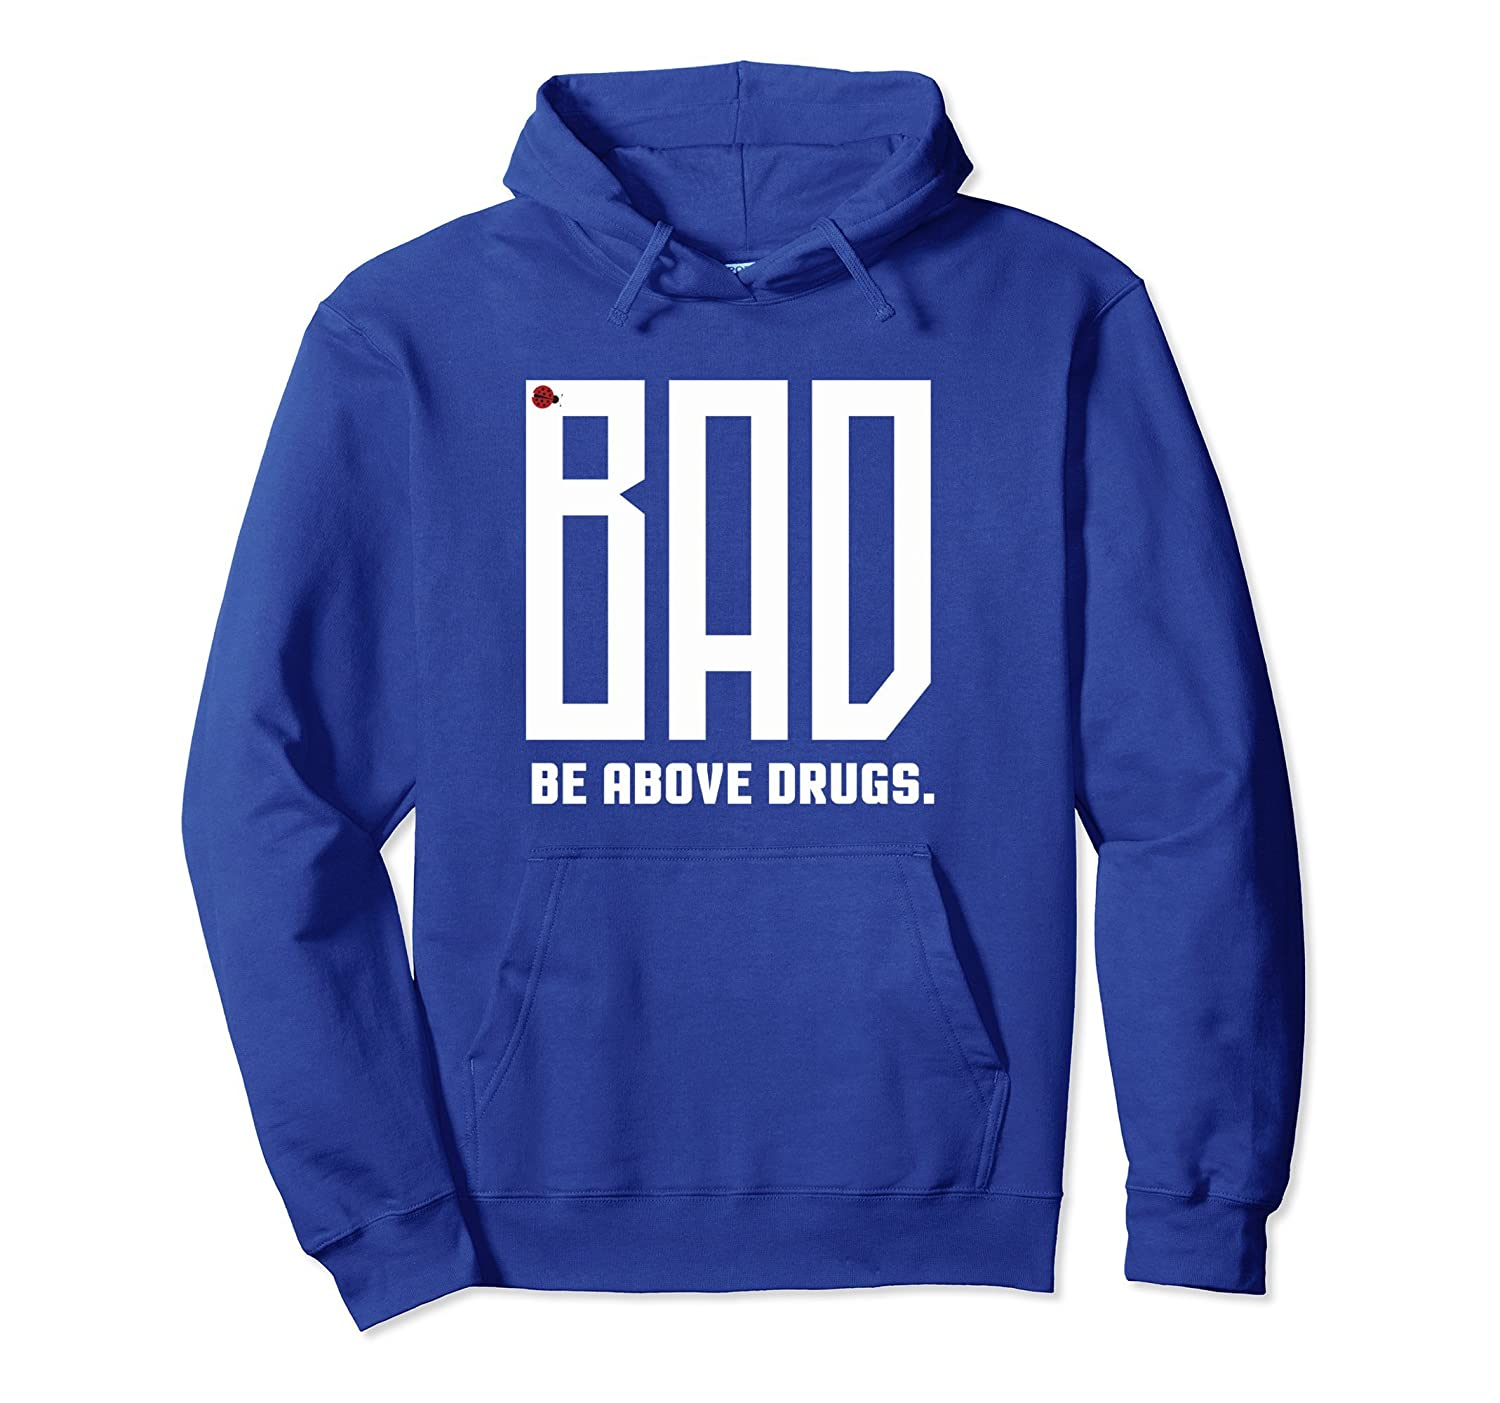 BAD Drug Free Hoodie for Sober, Drug Prevention Apparel-alottee gift